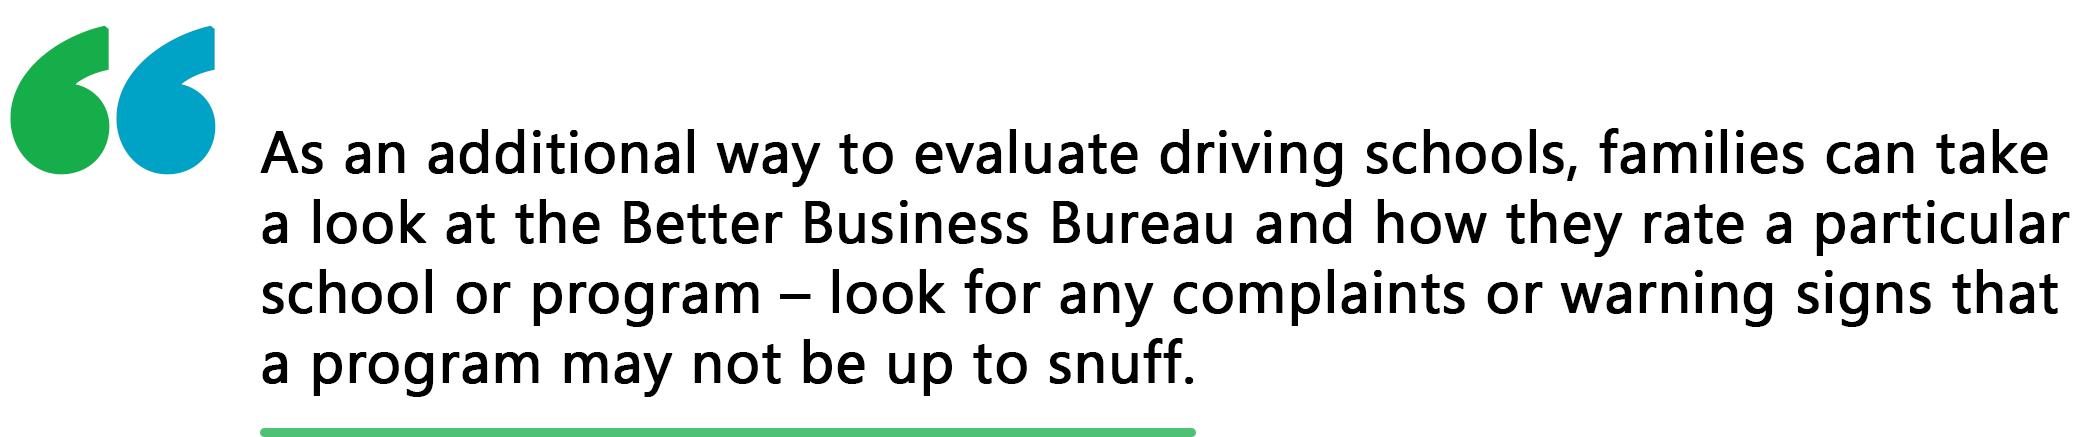 evaluating driving schools quote